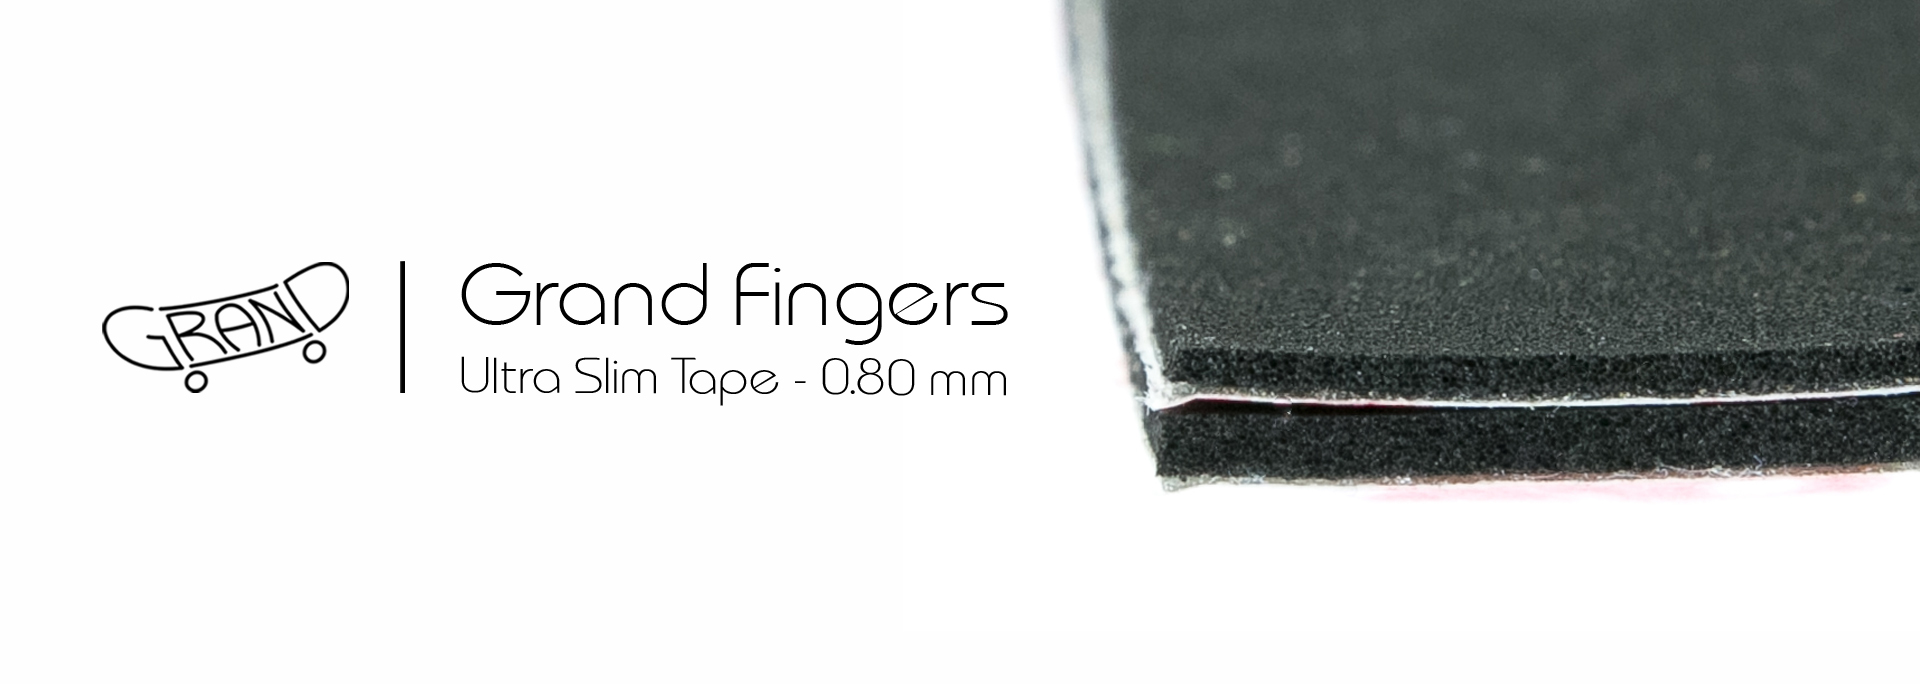 Grand Fingers Premium Ultra Slim Tape 0.80 mm